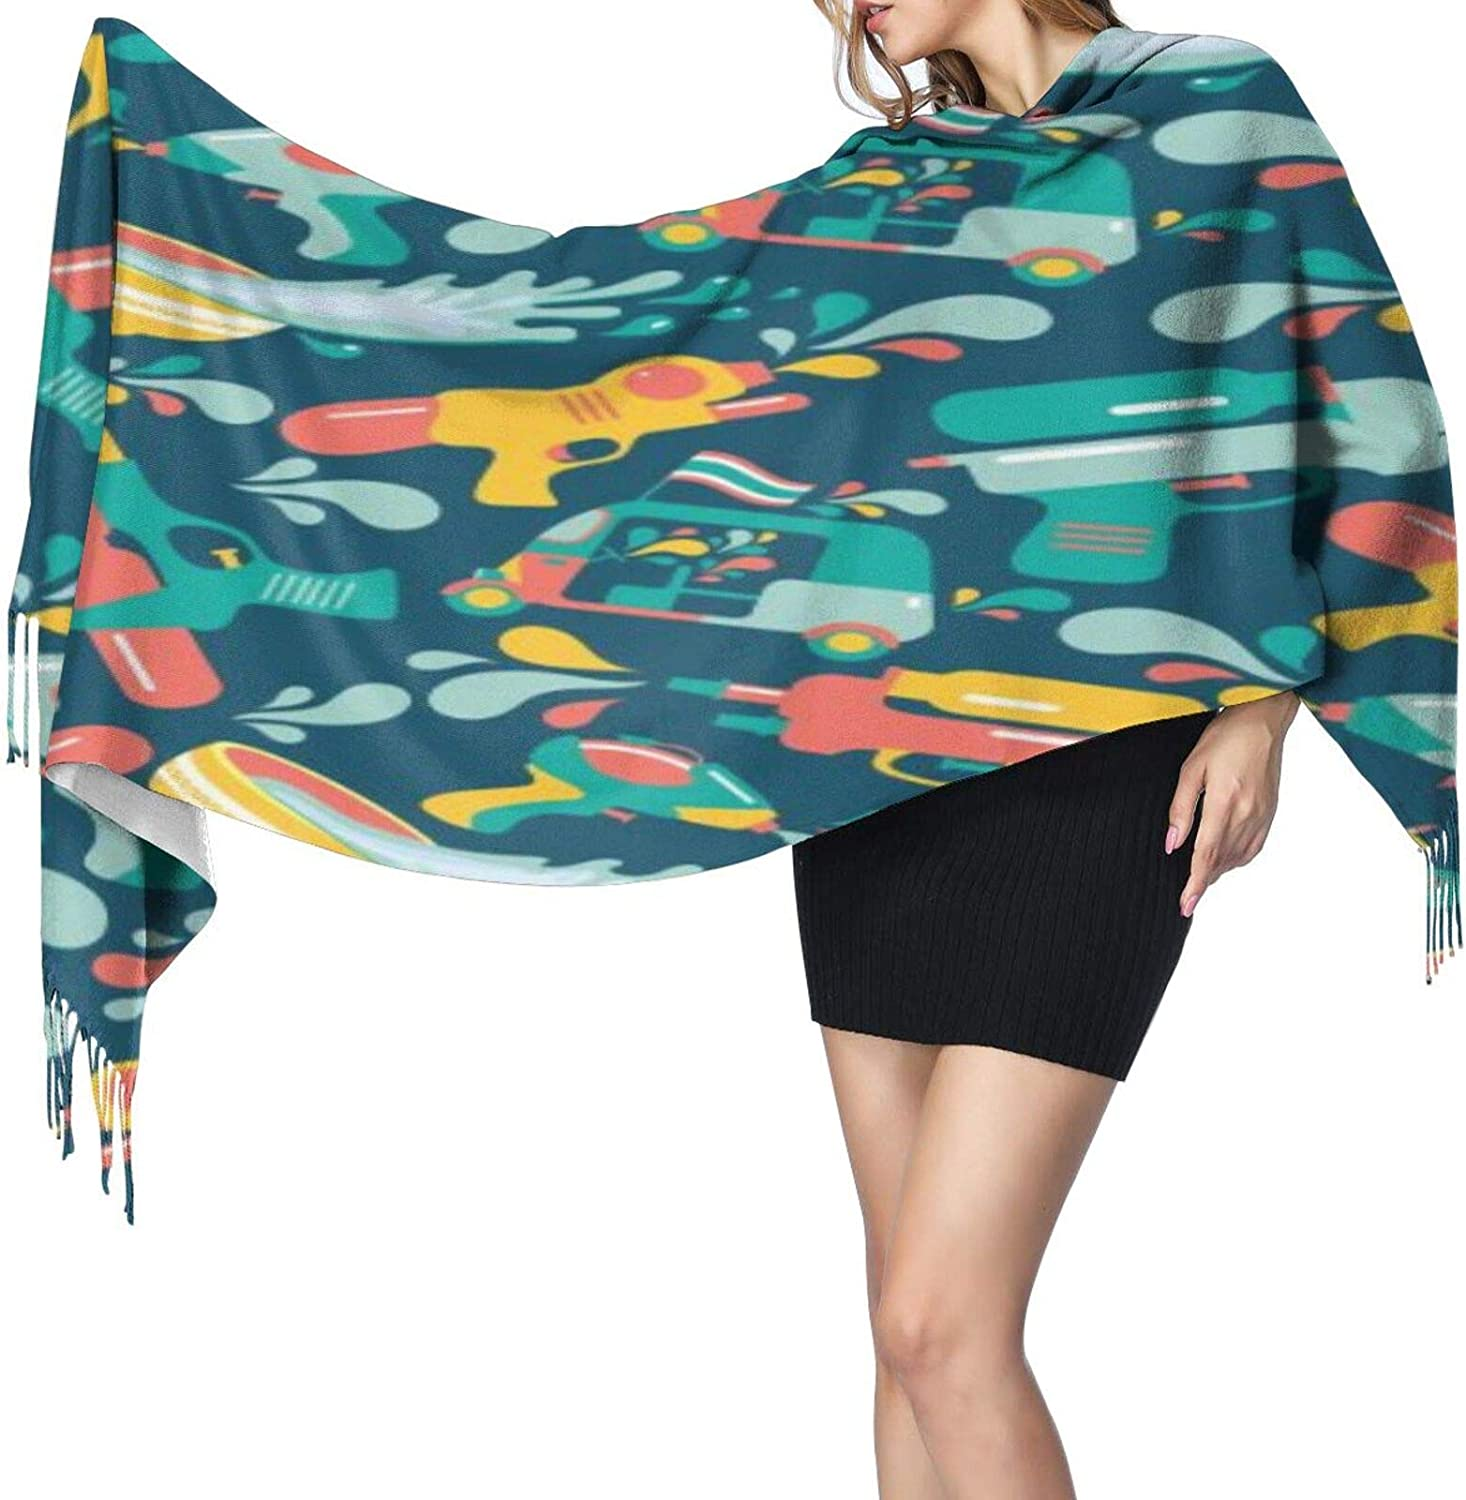 Cashmere fringed scarf Songkran Festival in Thailand winter extra large scarf